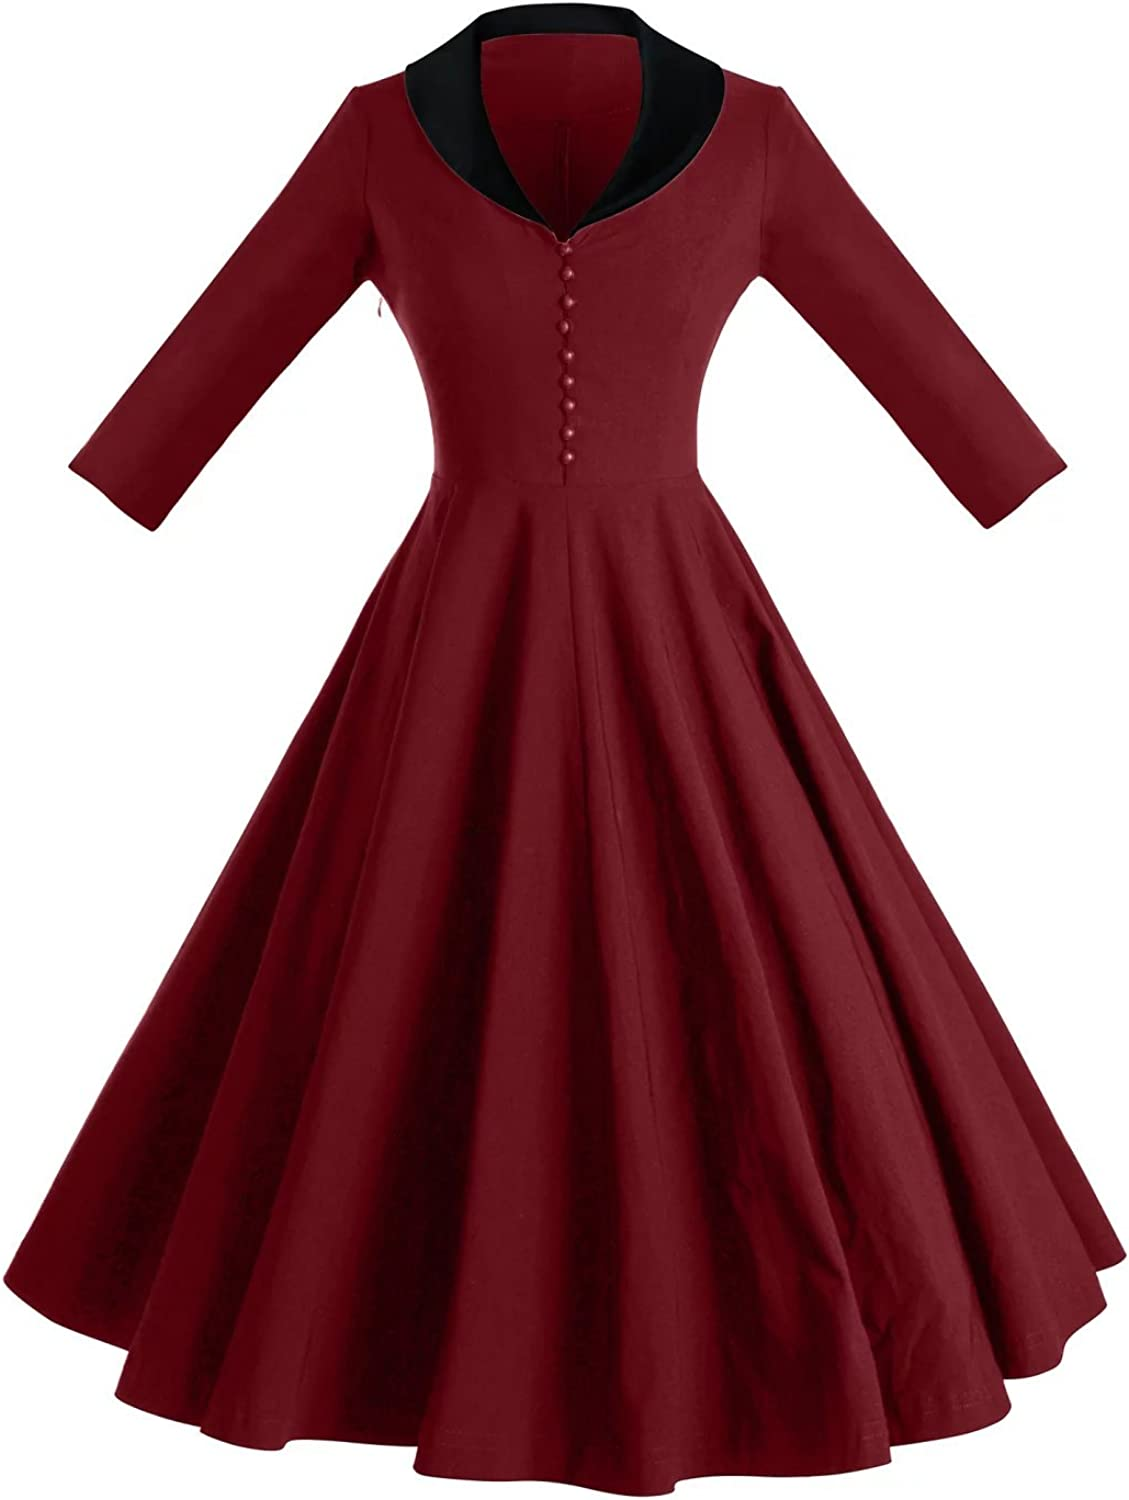 GownTown Womens Dresses Cape Collar 3 4 Sleeves 1950s Vintage Dresses Swing Stretchy Dresses